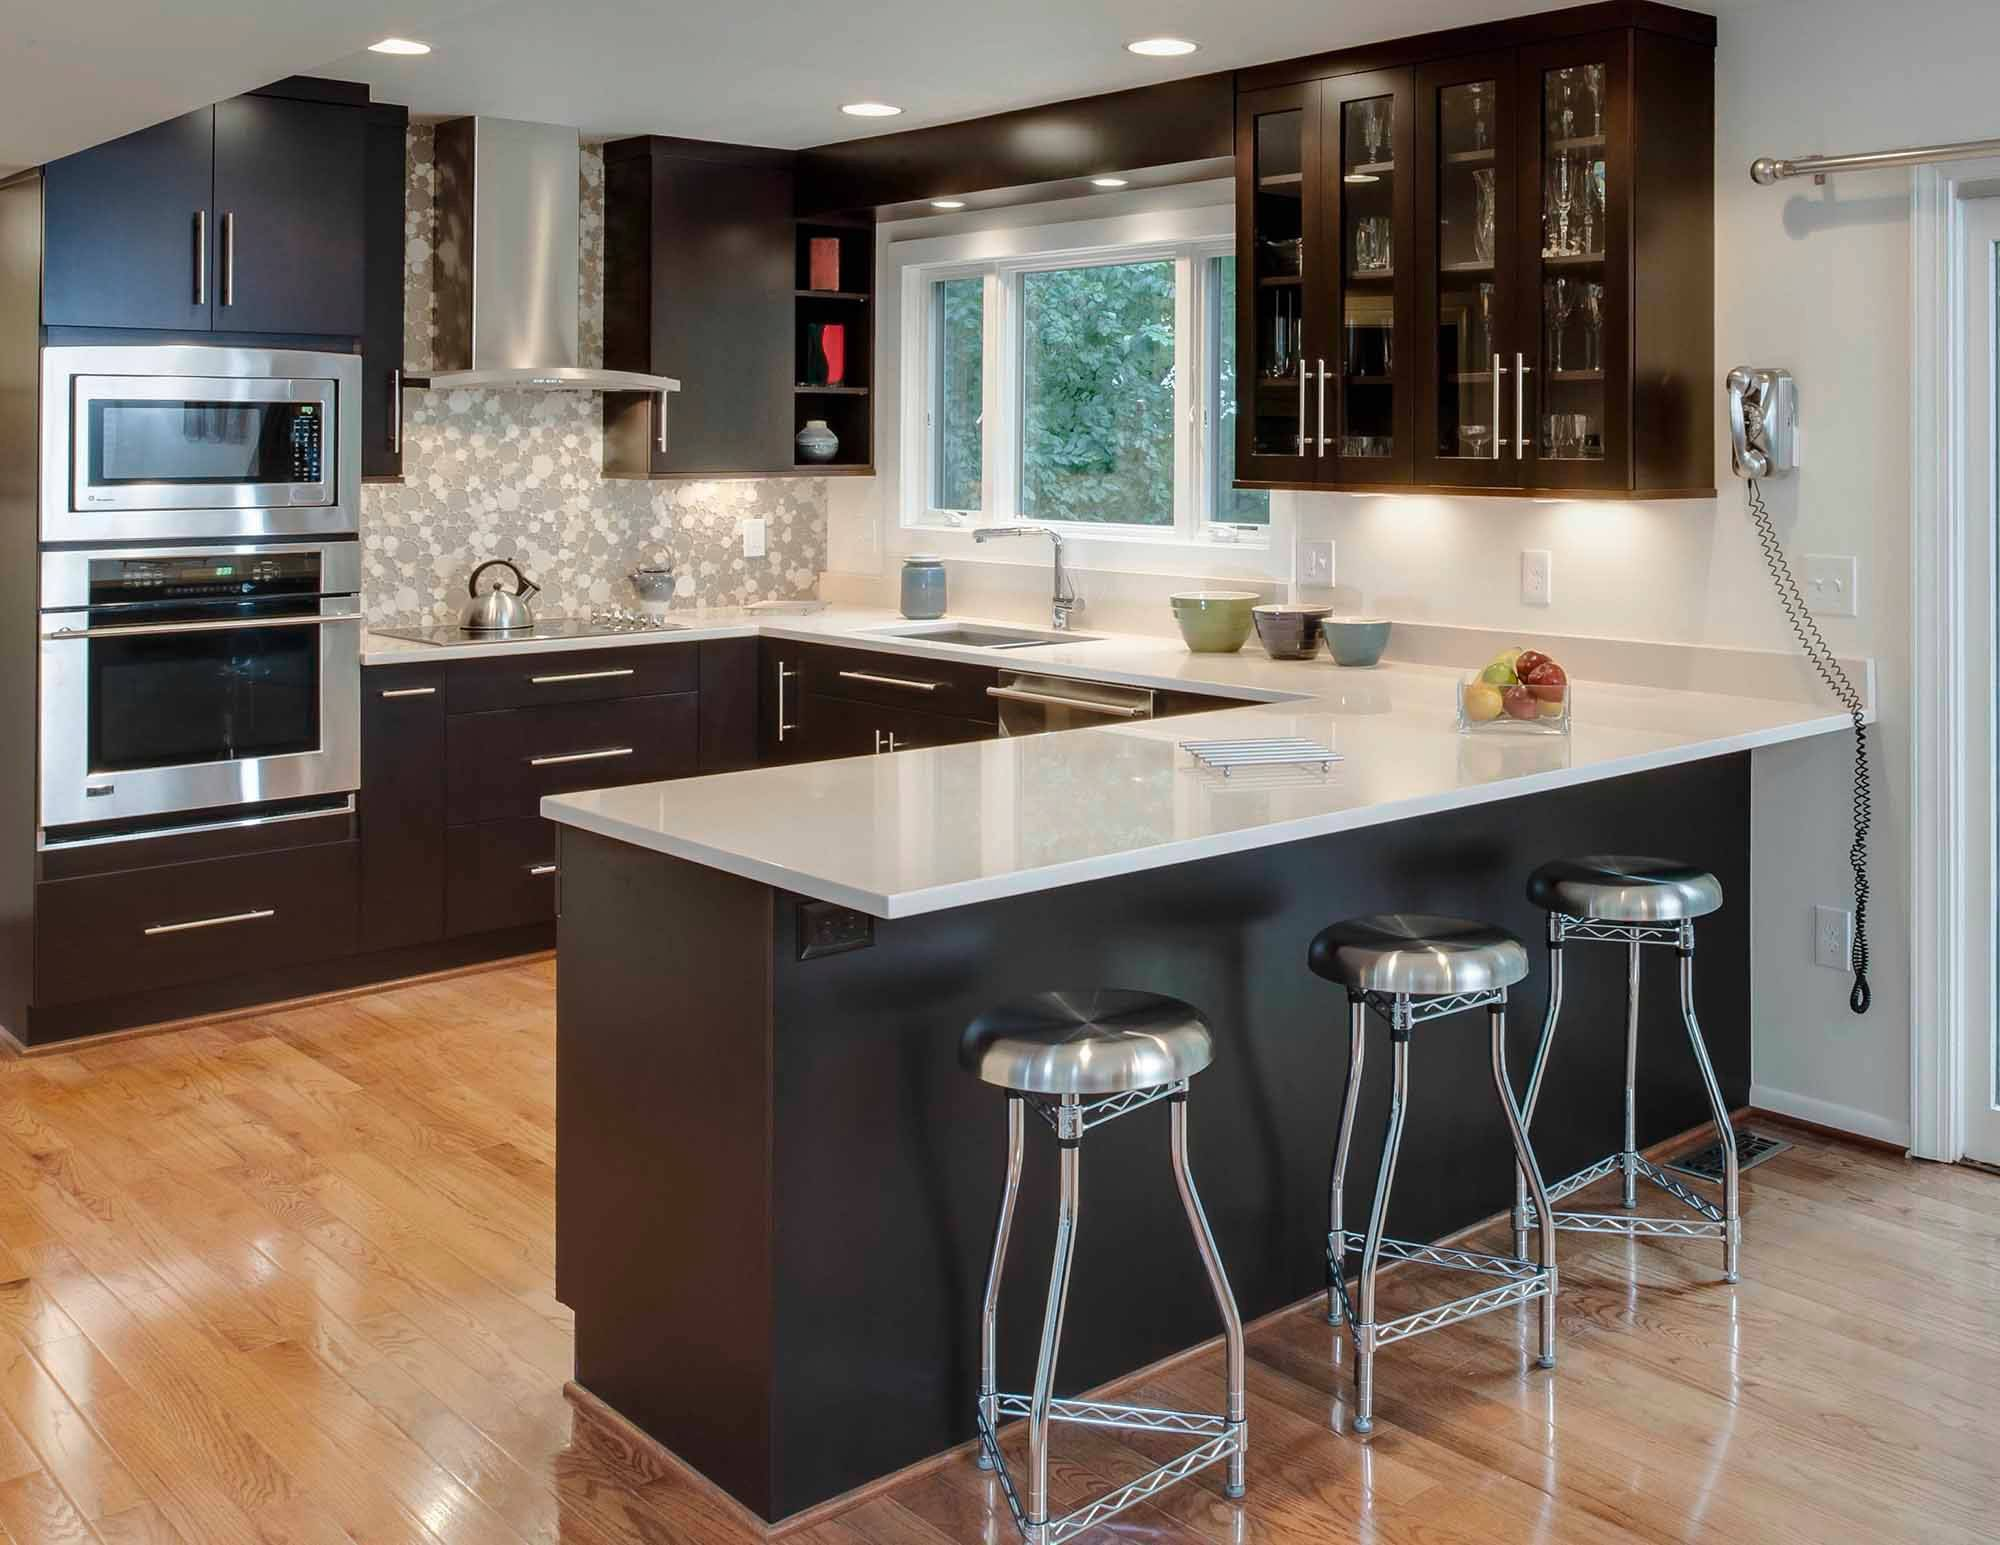 Black is the new white in kitchens